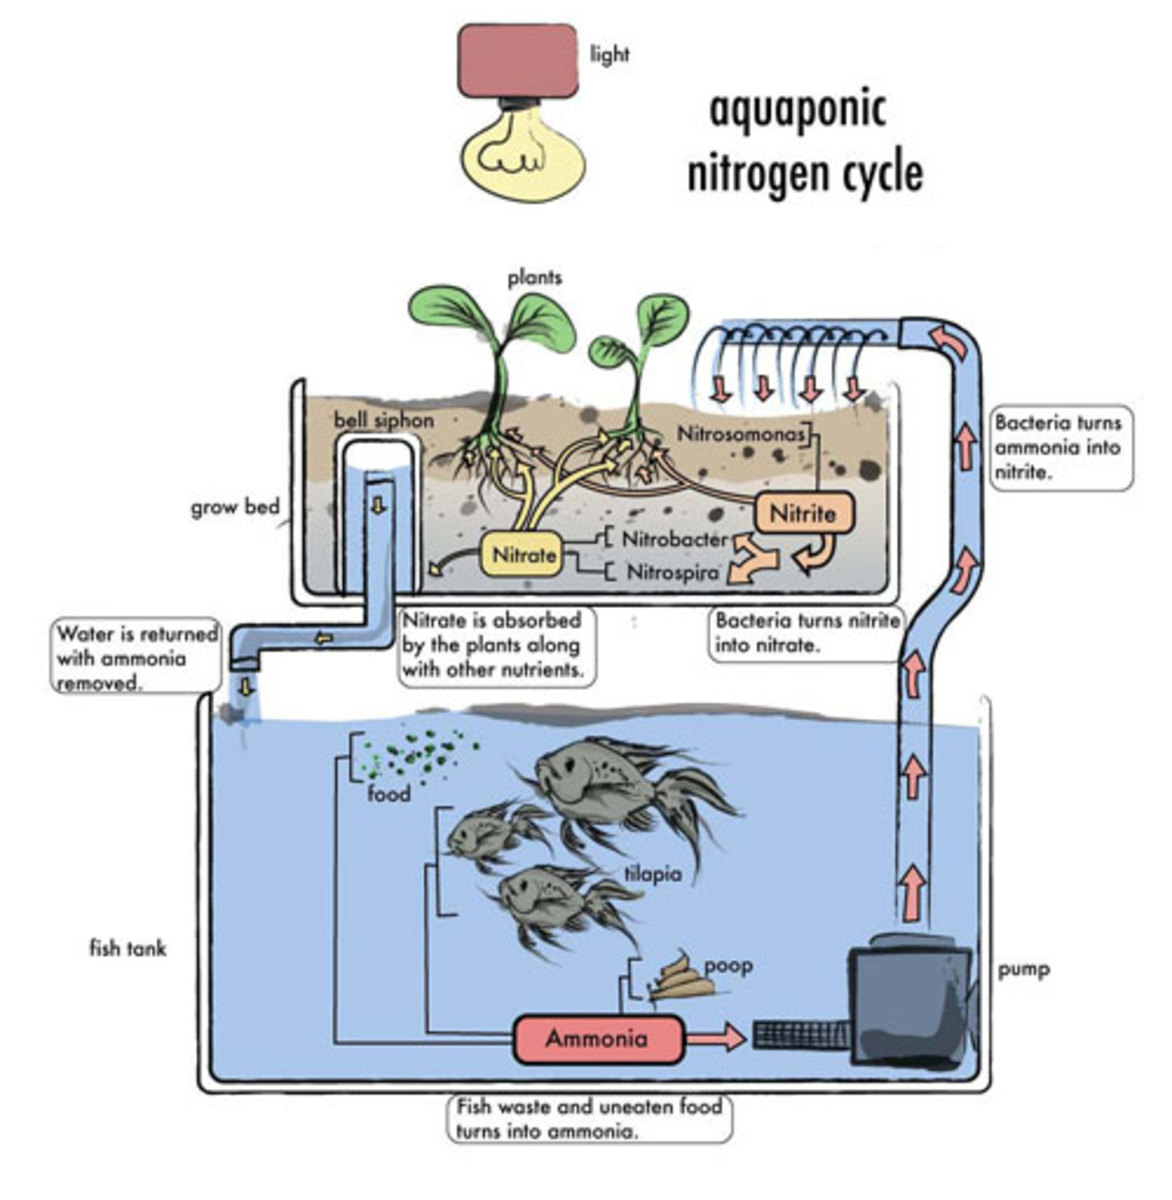 Aquaponics System: How it works